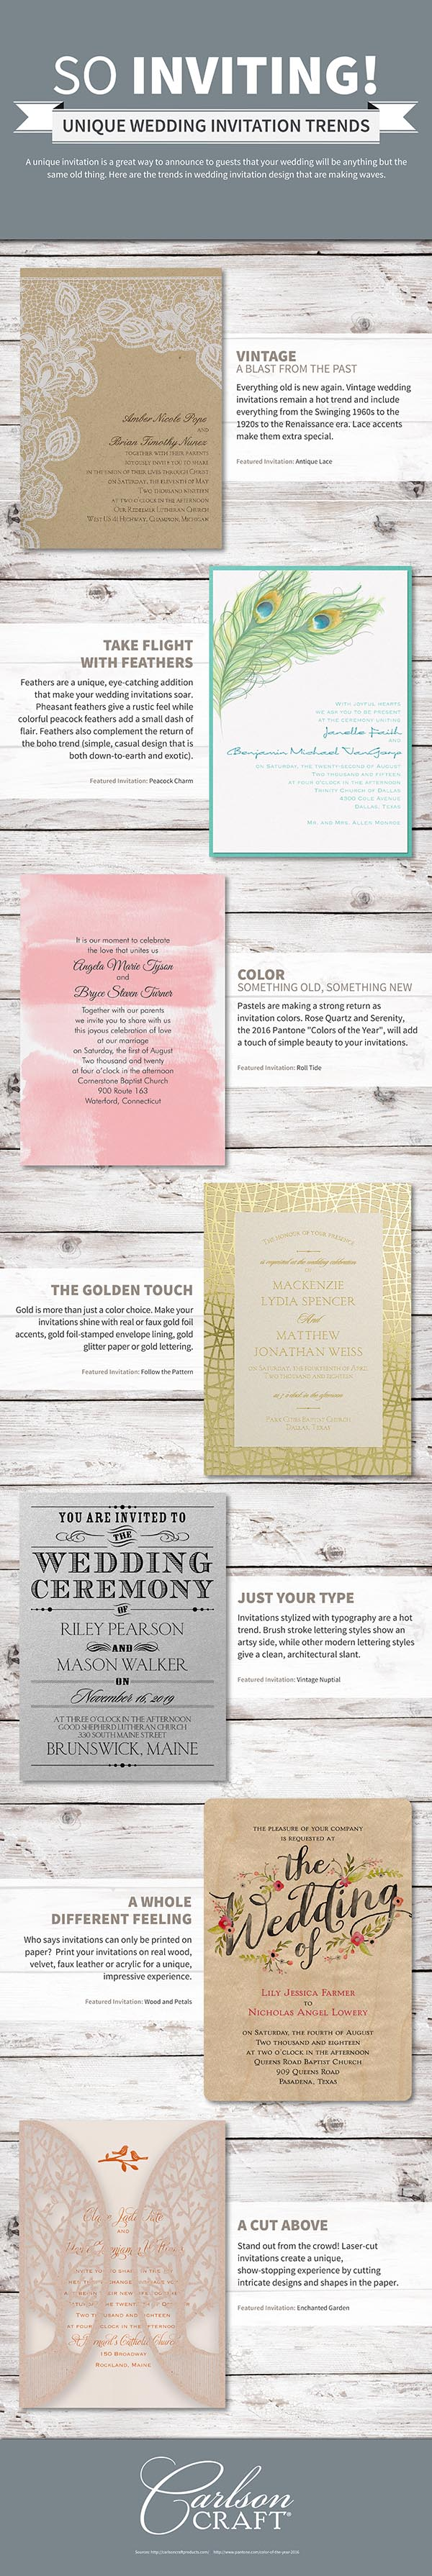 Top Wedding Invitation Trends For 2017 Resources Pinterest